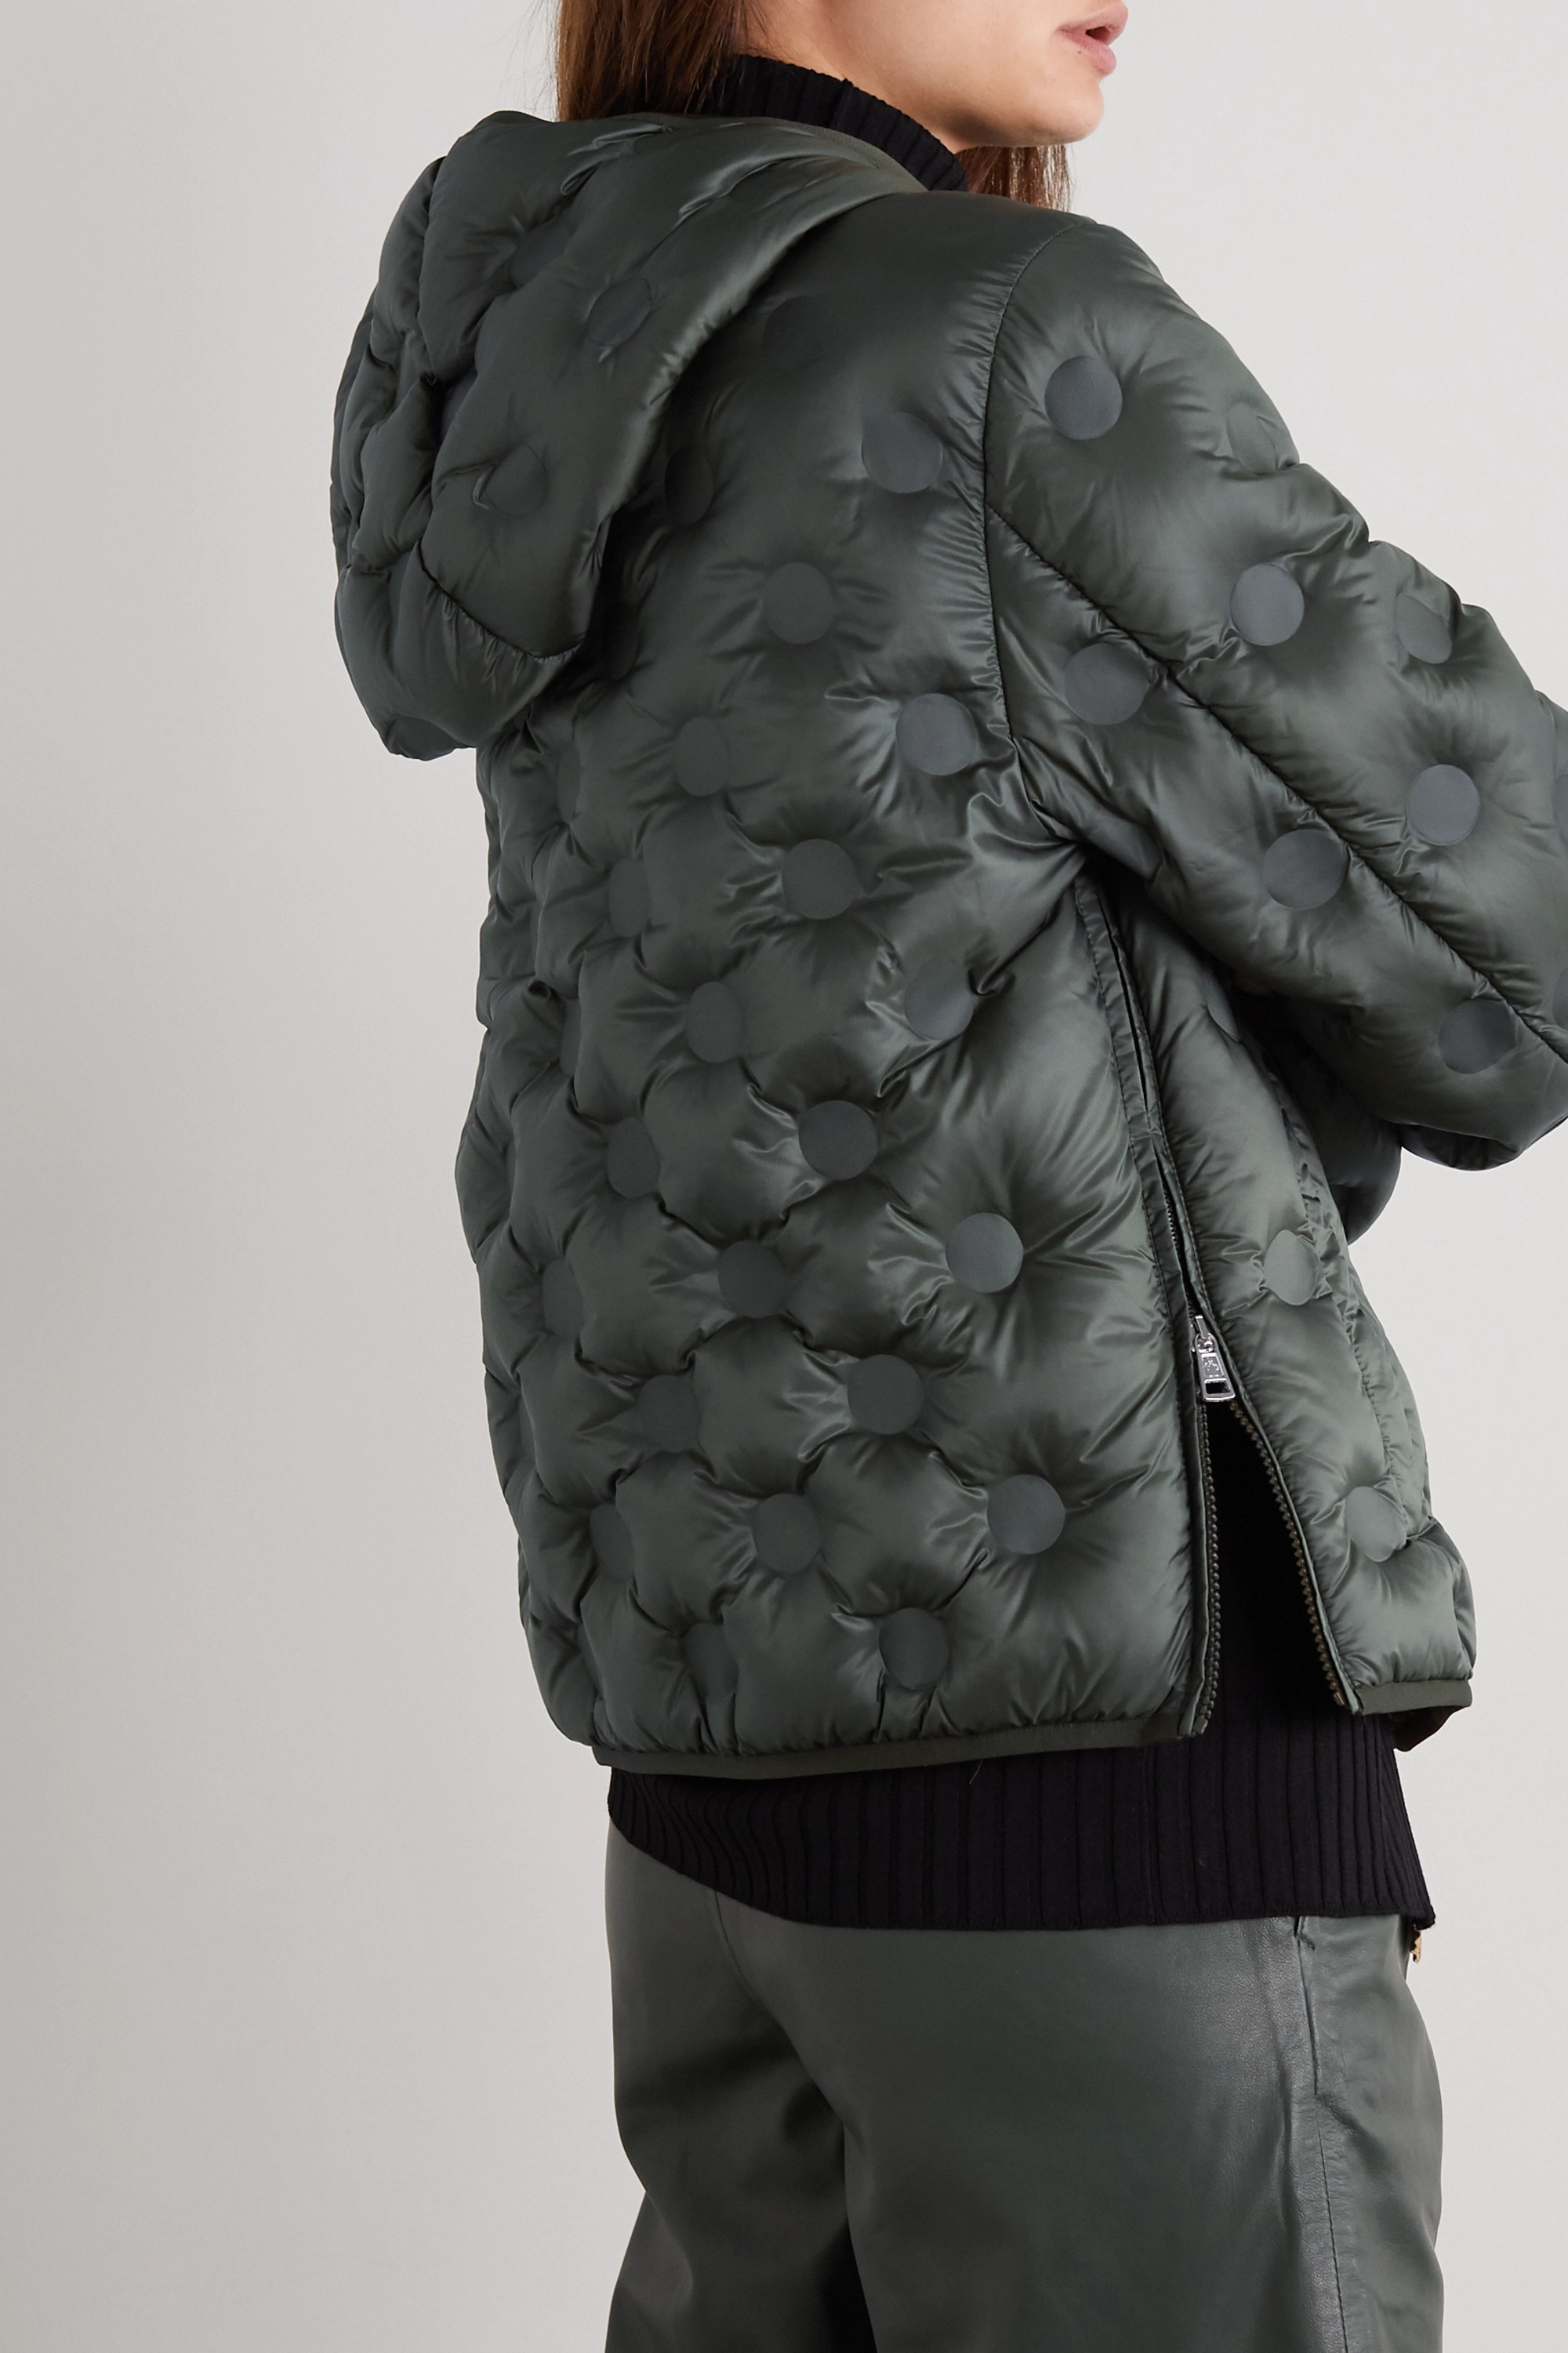 Moncler Genius + 1 JW Anderson Abbotts hooded quilted shell down jacket